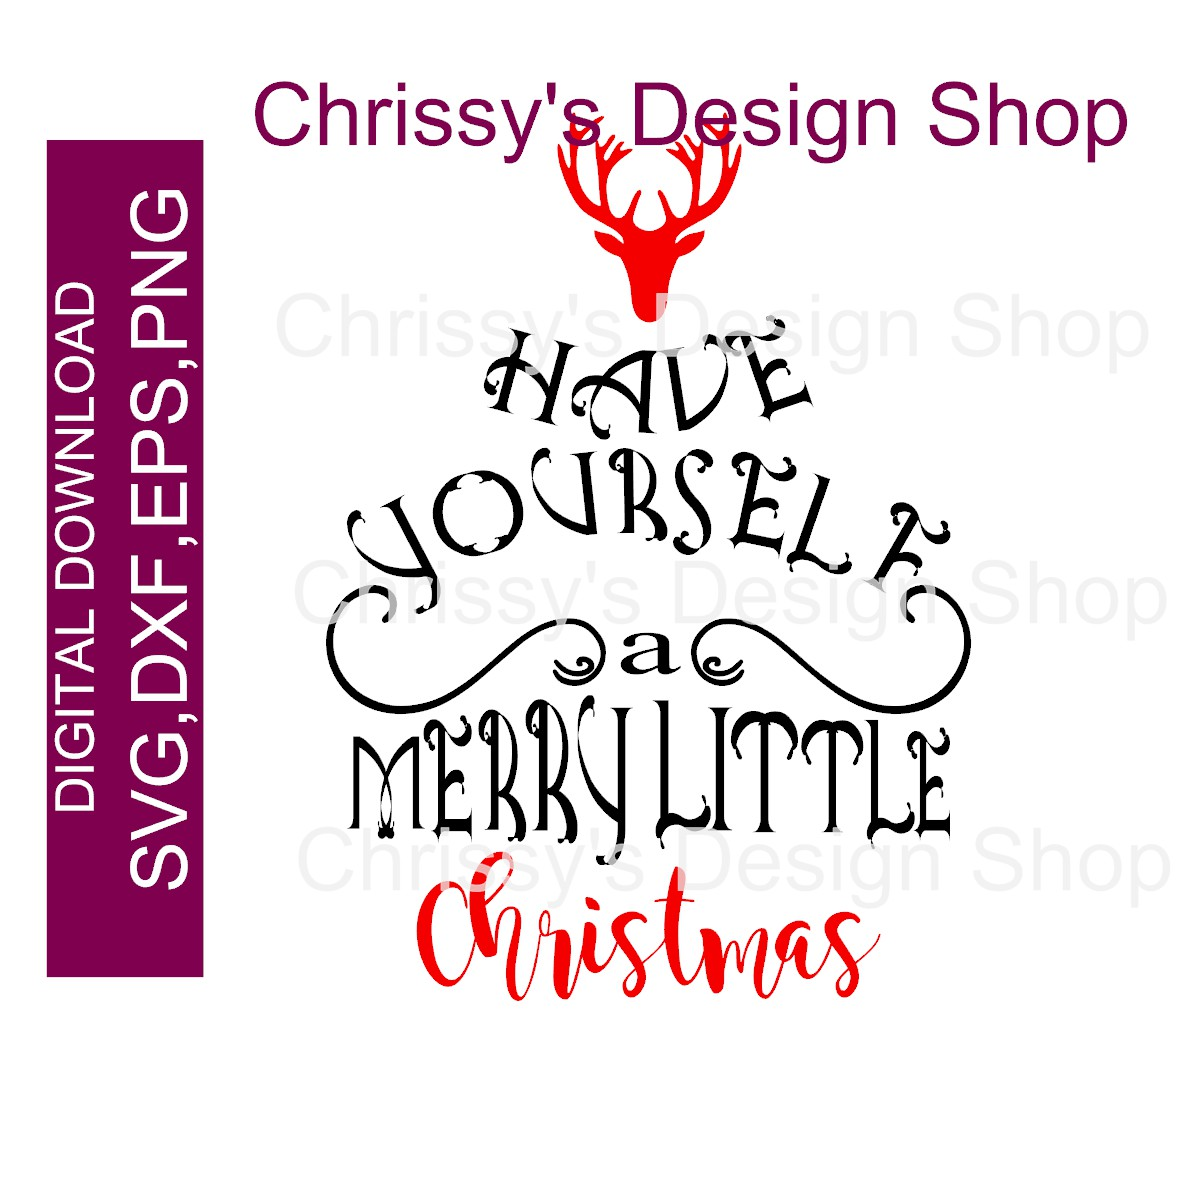 Have Yourself A Merry Little Christmas Svg.Have A Merry Little Christmas Svg Dxf Eps